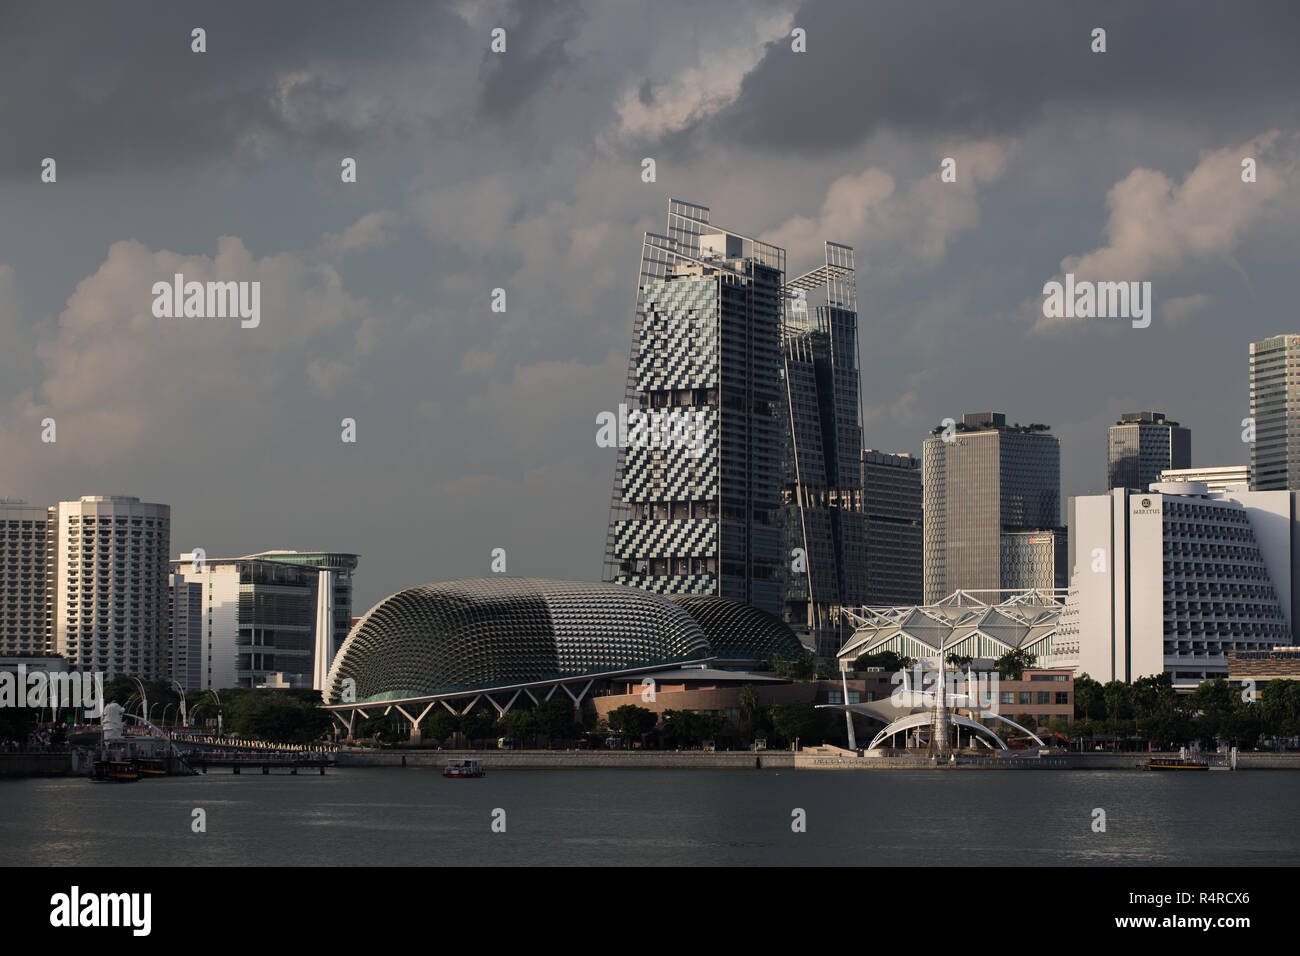 A gloomy and cloudy weather scene of cityscape in SIngapore. - Stock Image